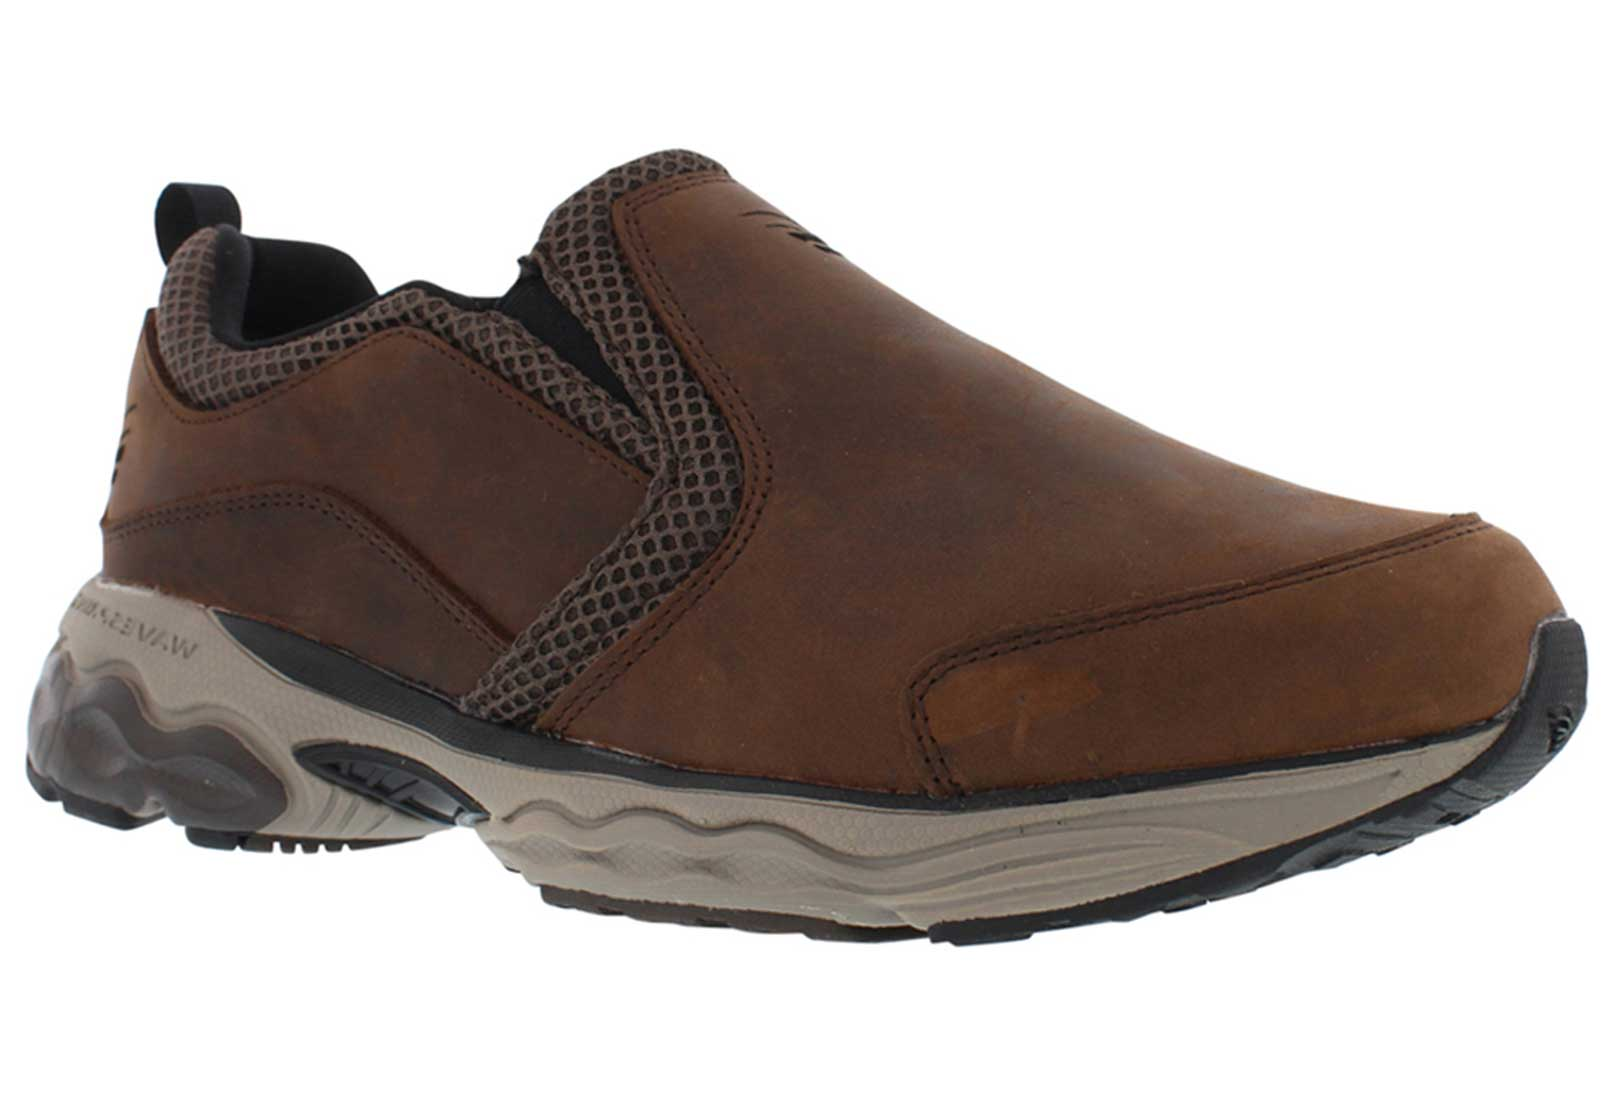 Spira Footwear - Mens Taurus Leather Moc Walking Shoe